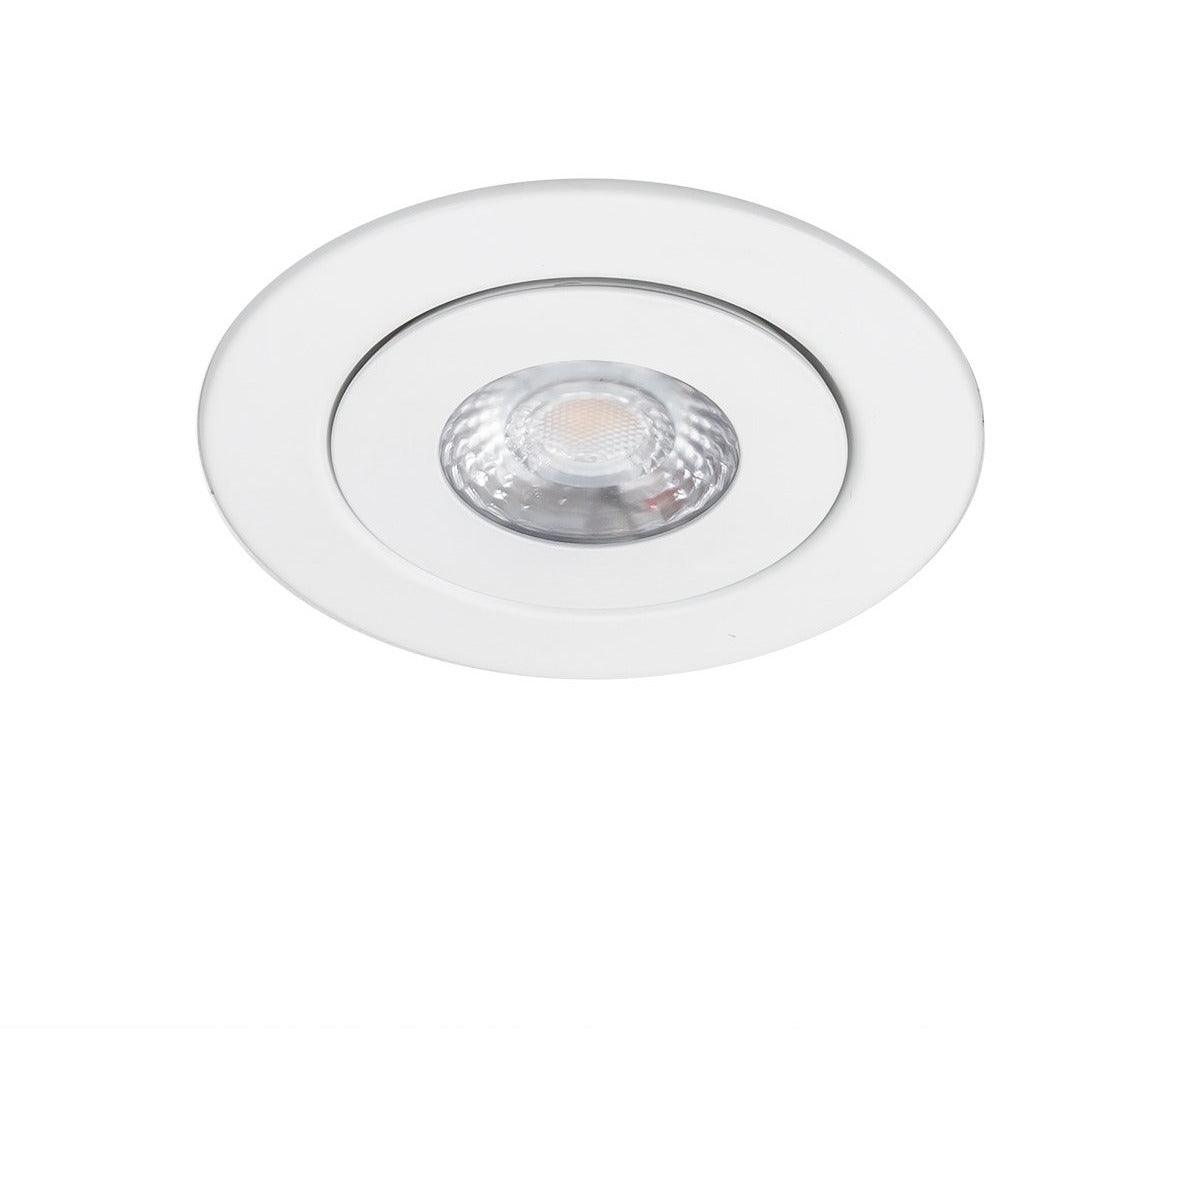 WAC Lighting - R4ERAR-W930-WT - 4-Inch LED Adjustable Recessed Kit - Lotos - White